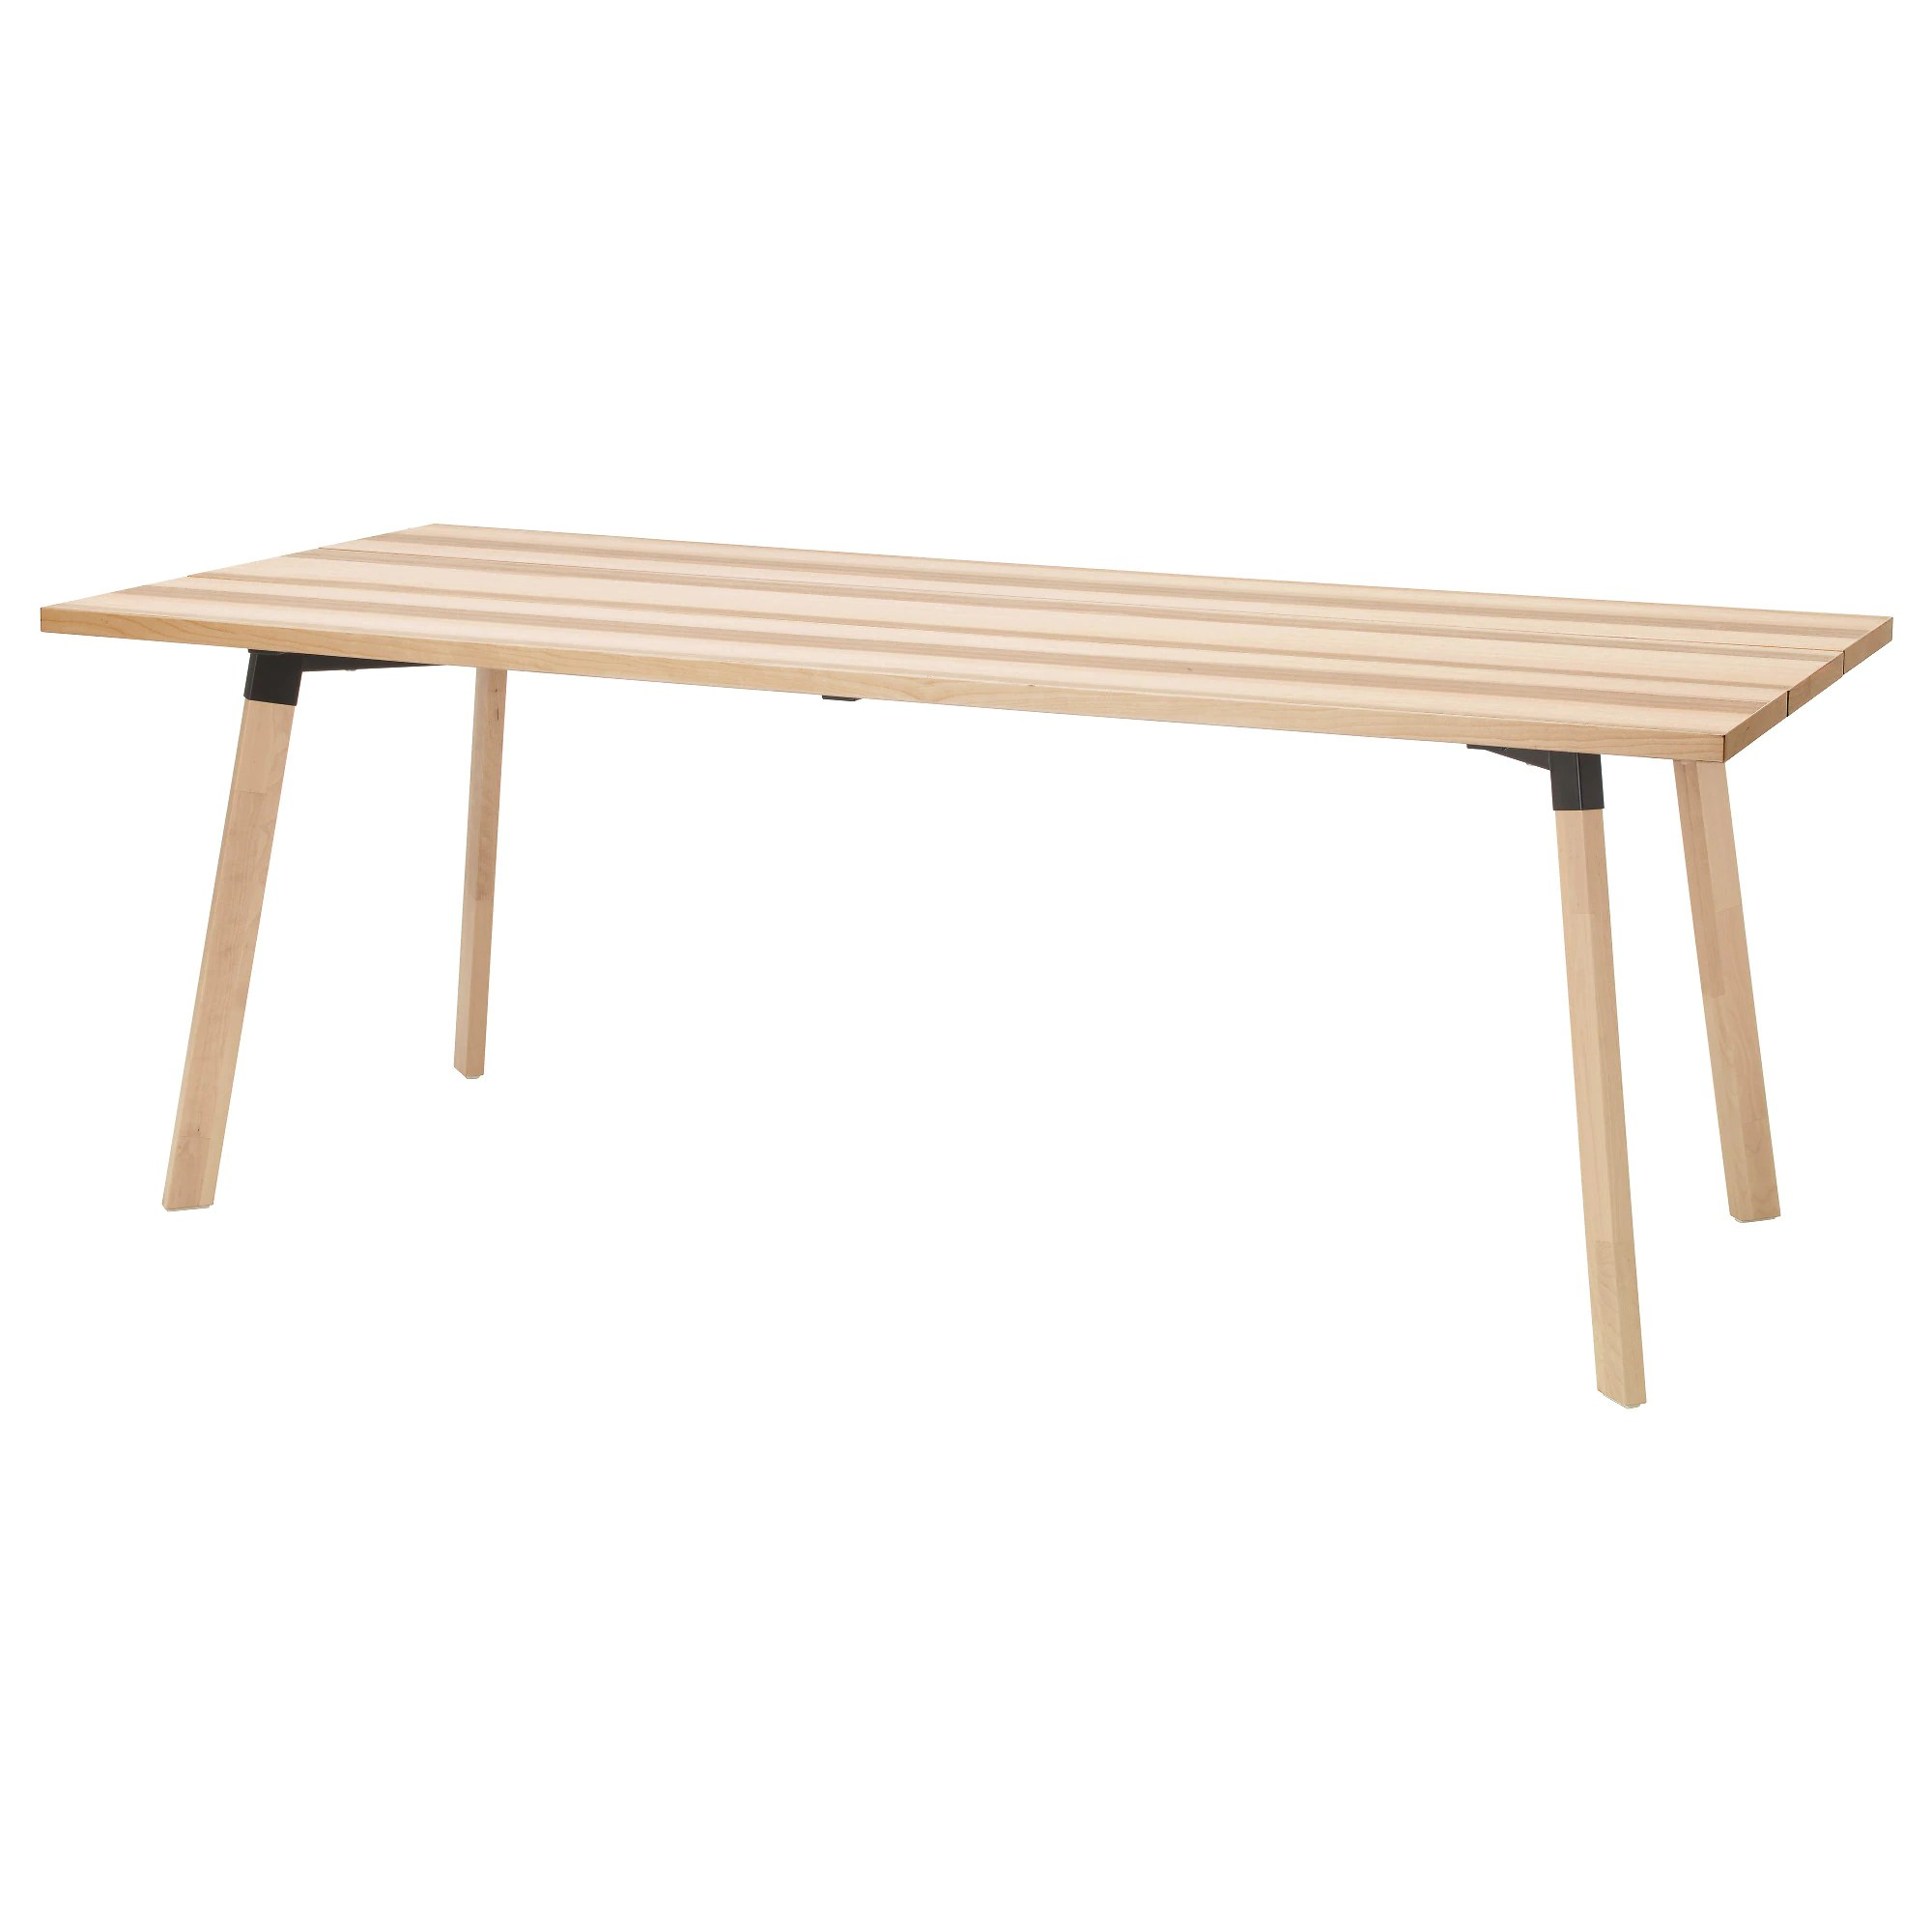 Meubles Ikea France Sas Ypperlig Table Frêne